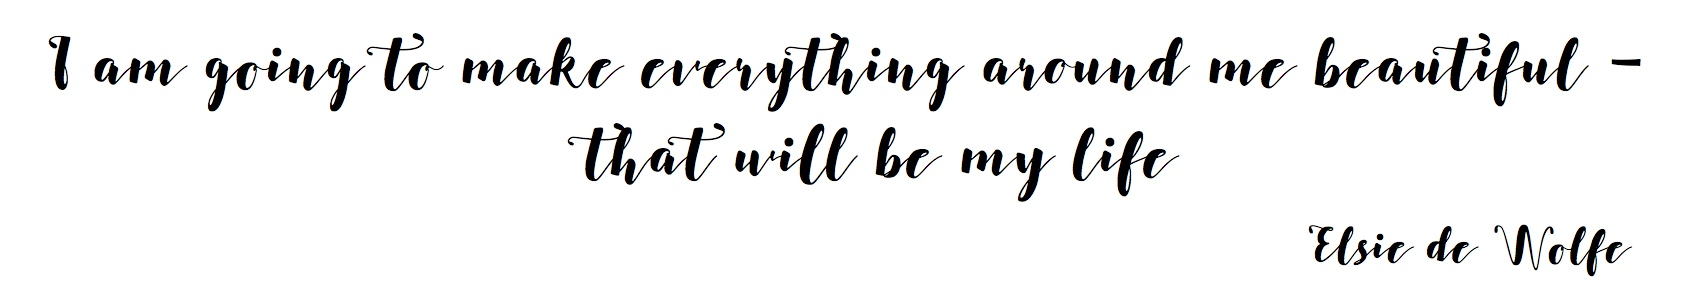 elsie quote.jpeg